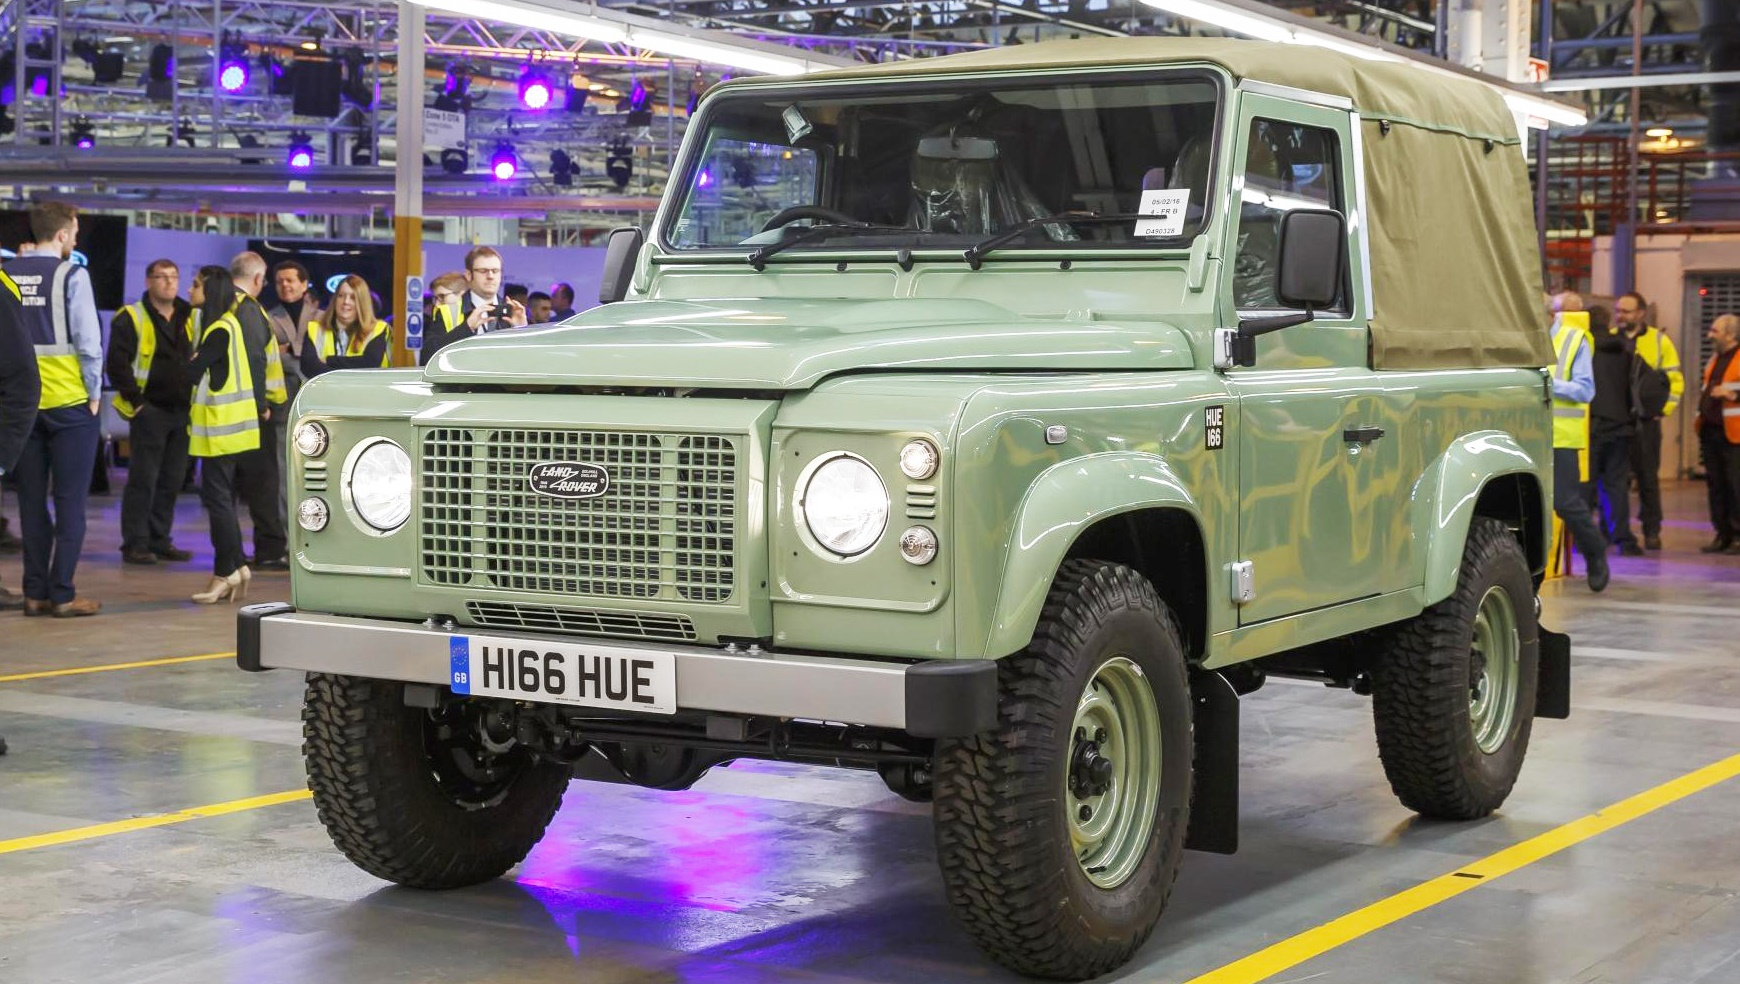 Последний экземпляр Land Rover Defender сошел с конвейера завода фото